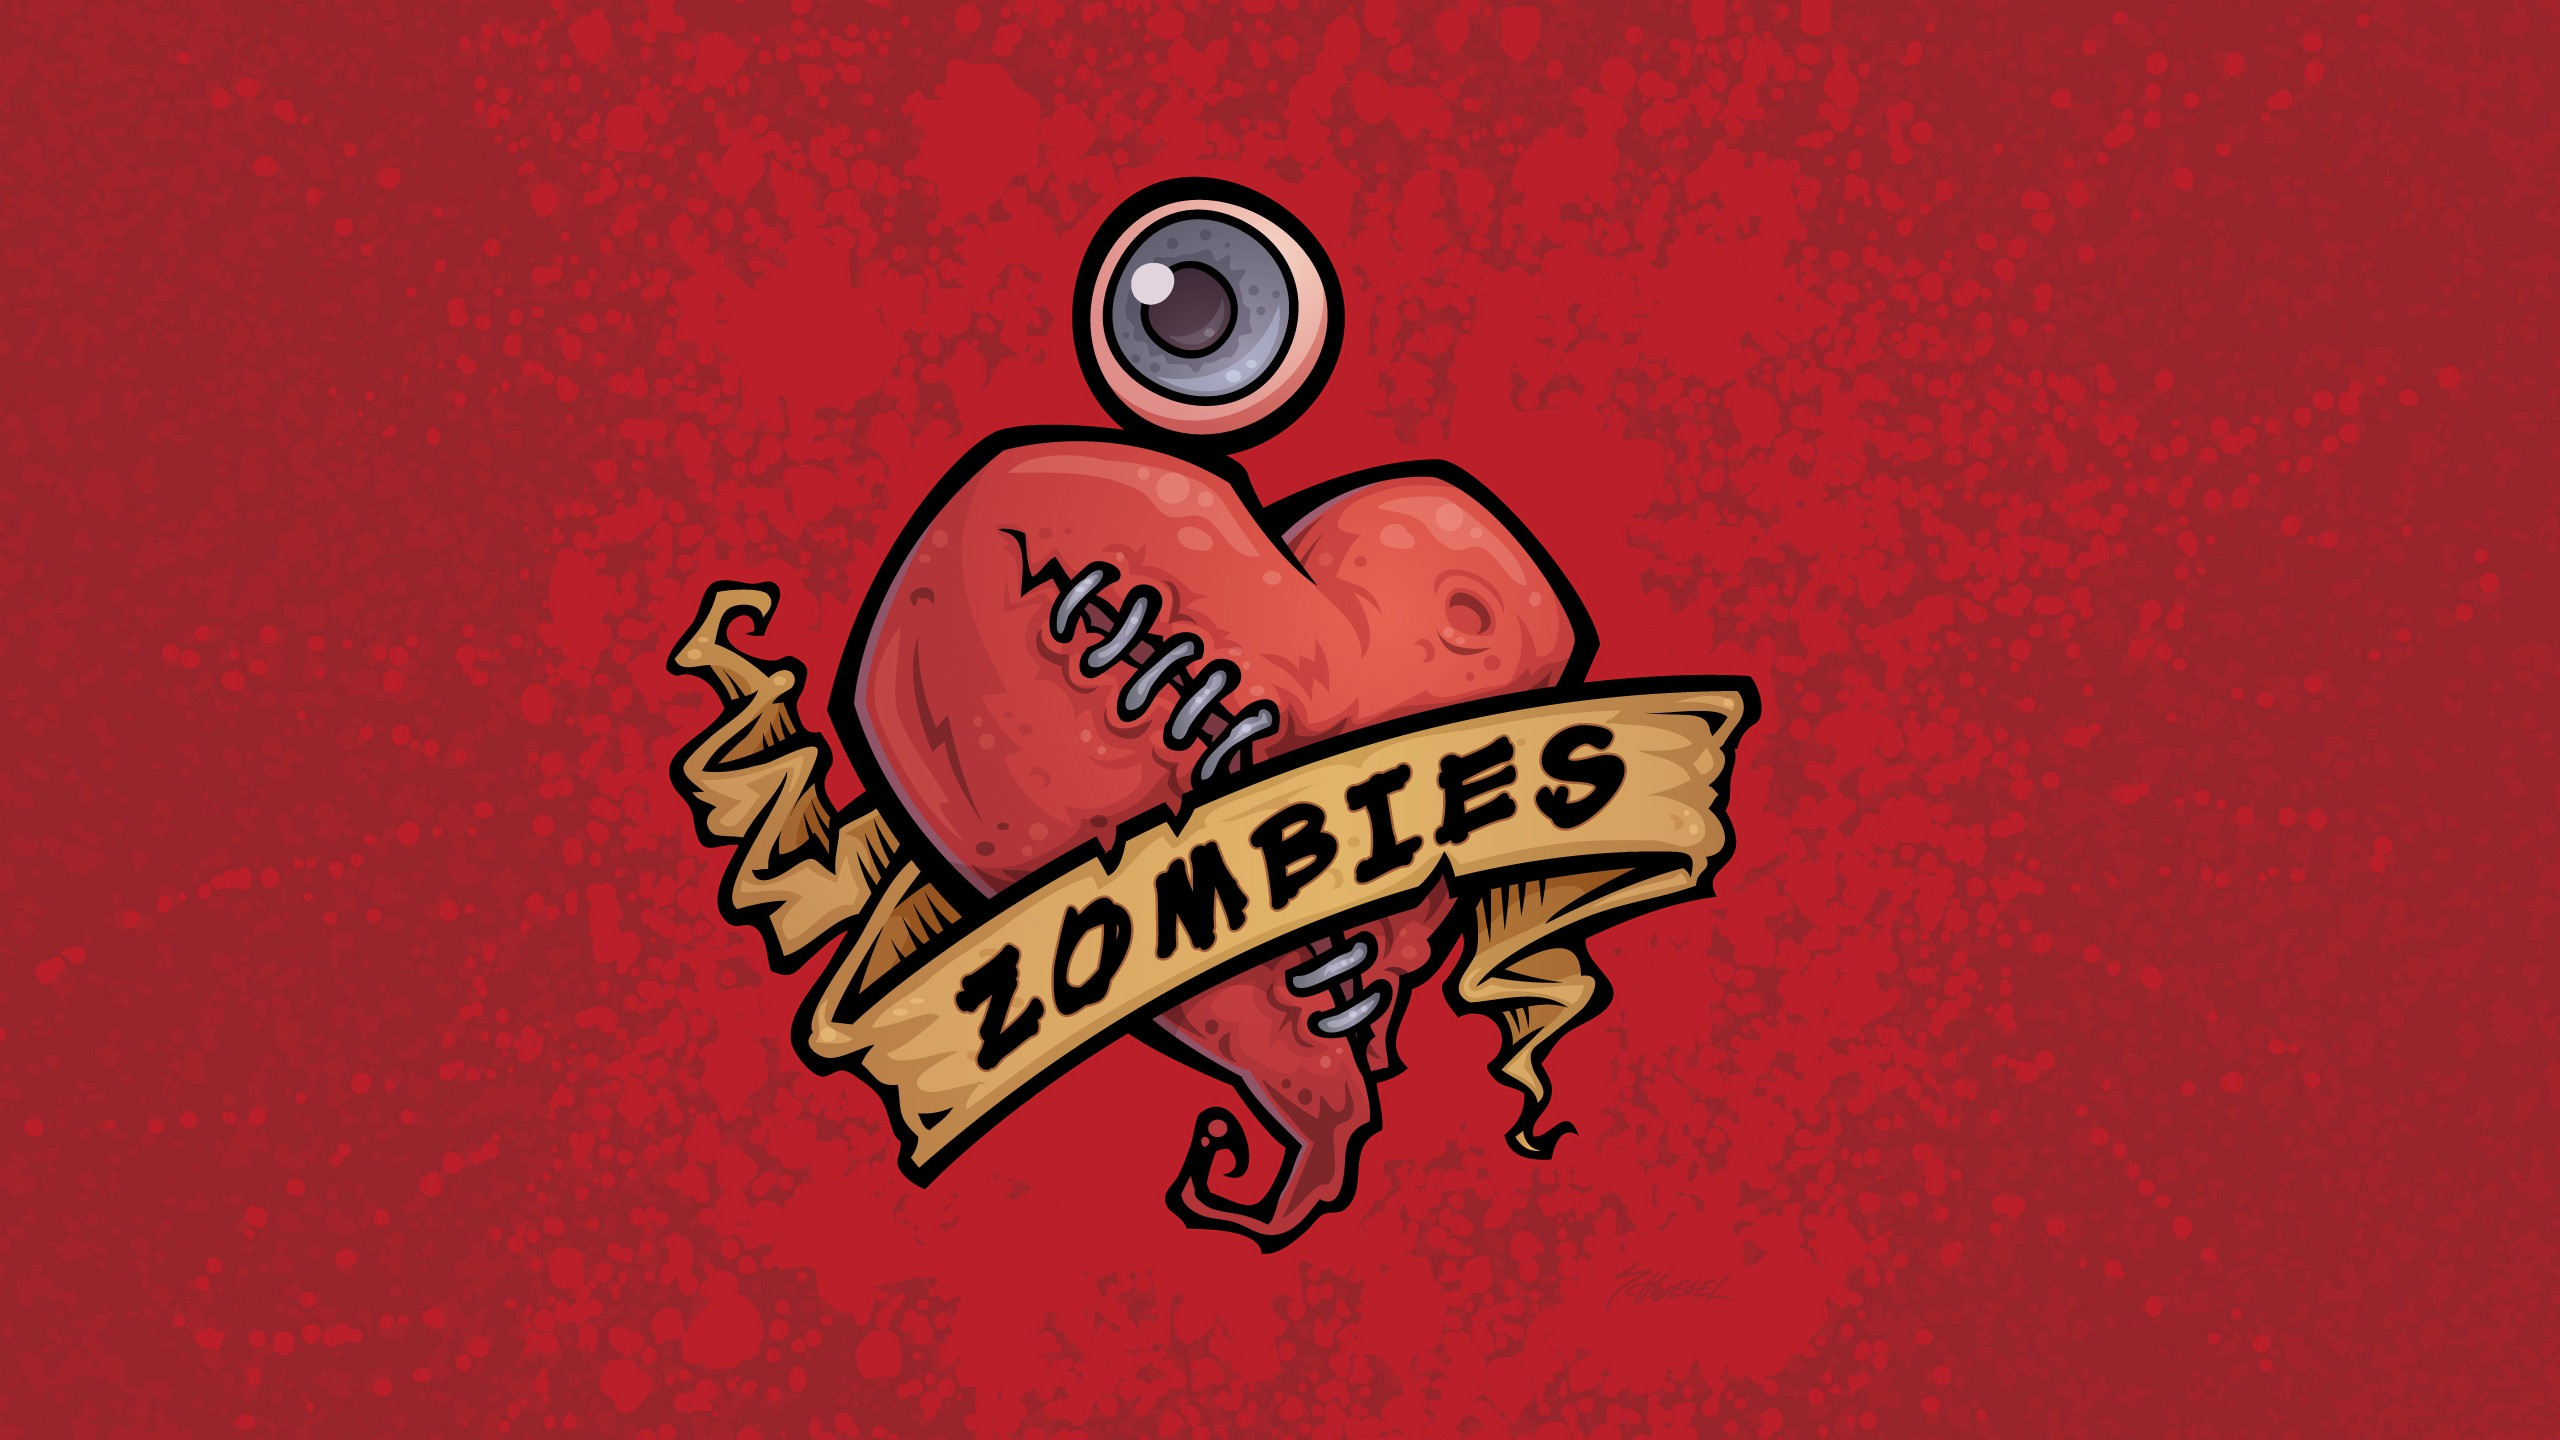 Cute Black Wallpaper Dark Horror Heart Love Romance Zombie Wallpaper